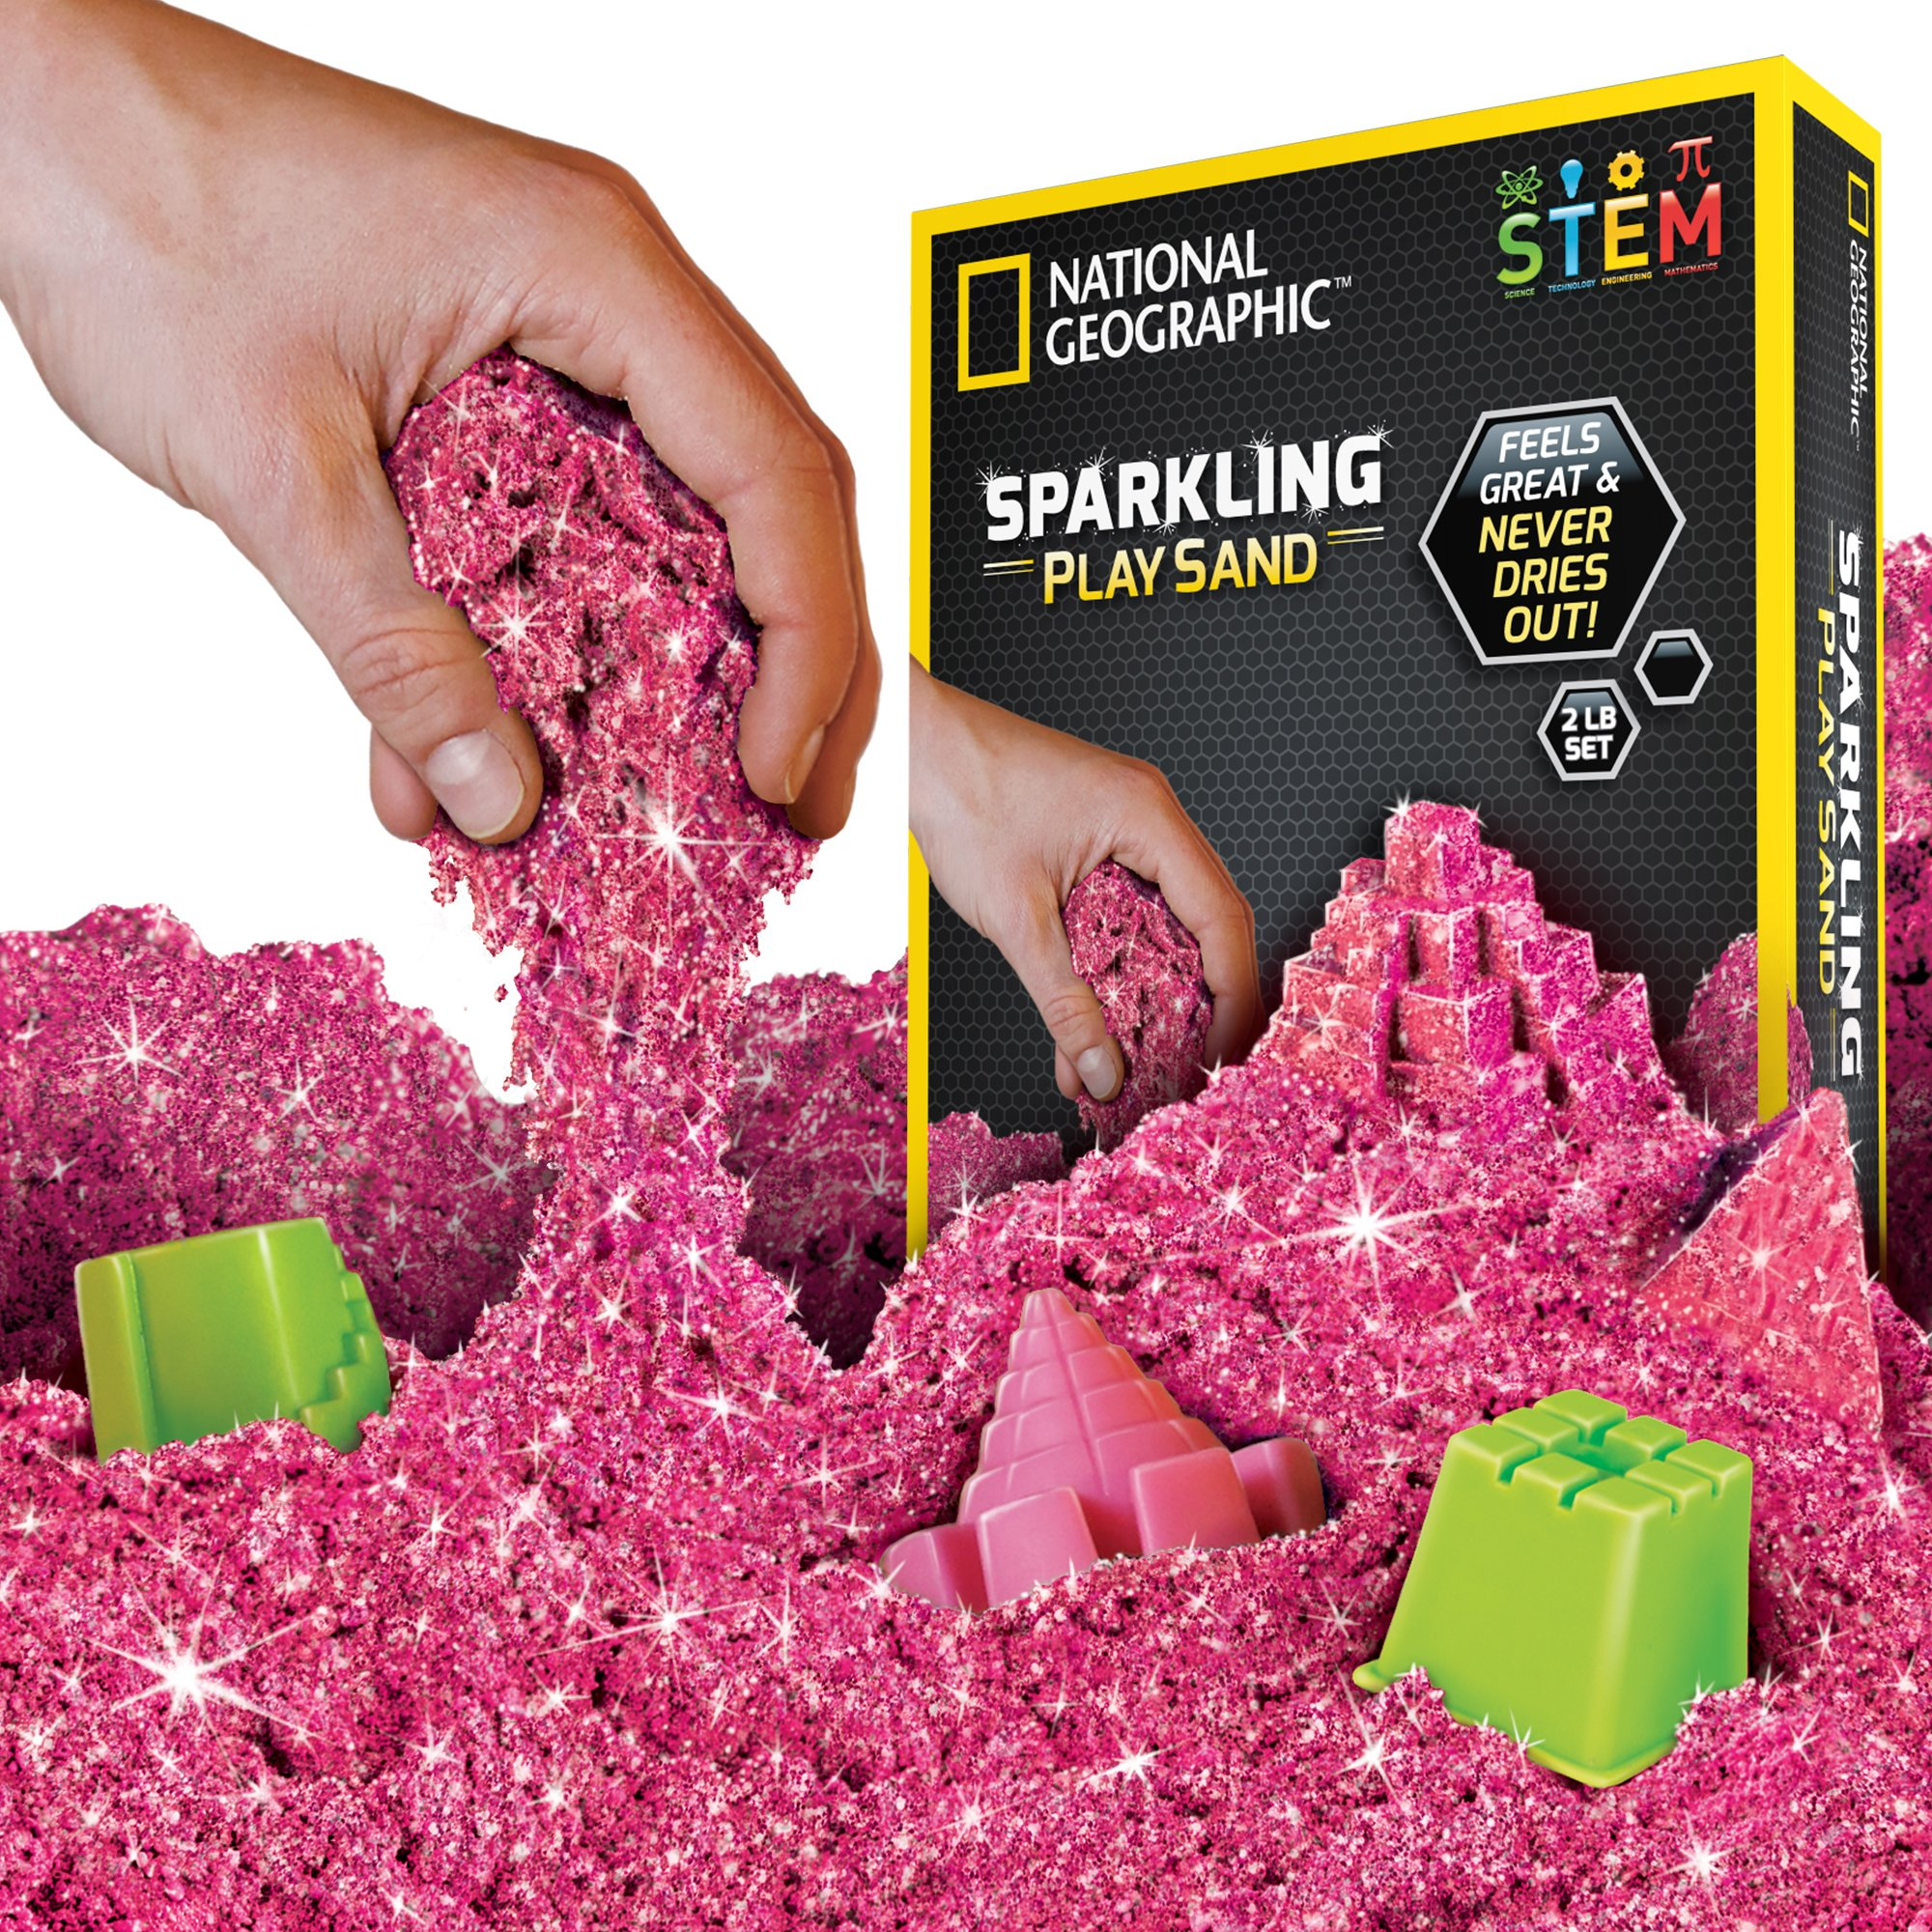 NATIONAL GEOGRAPHIC Sparkling Play Sand - 2 LBS of Shimmering Sand with Castle Molds and Tray (Pink) - A Kinetic Sensory Activity by NATIONAL GEOGRAPHIC